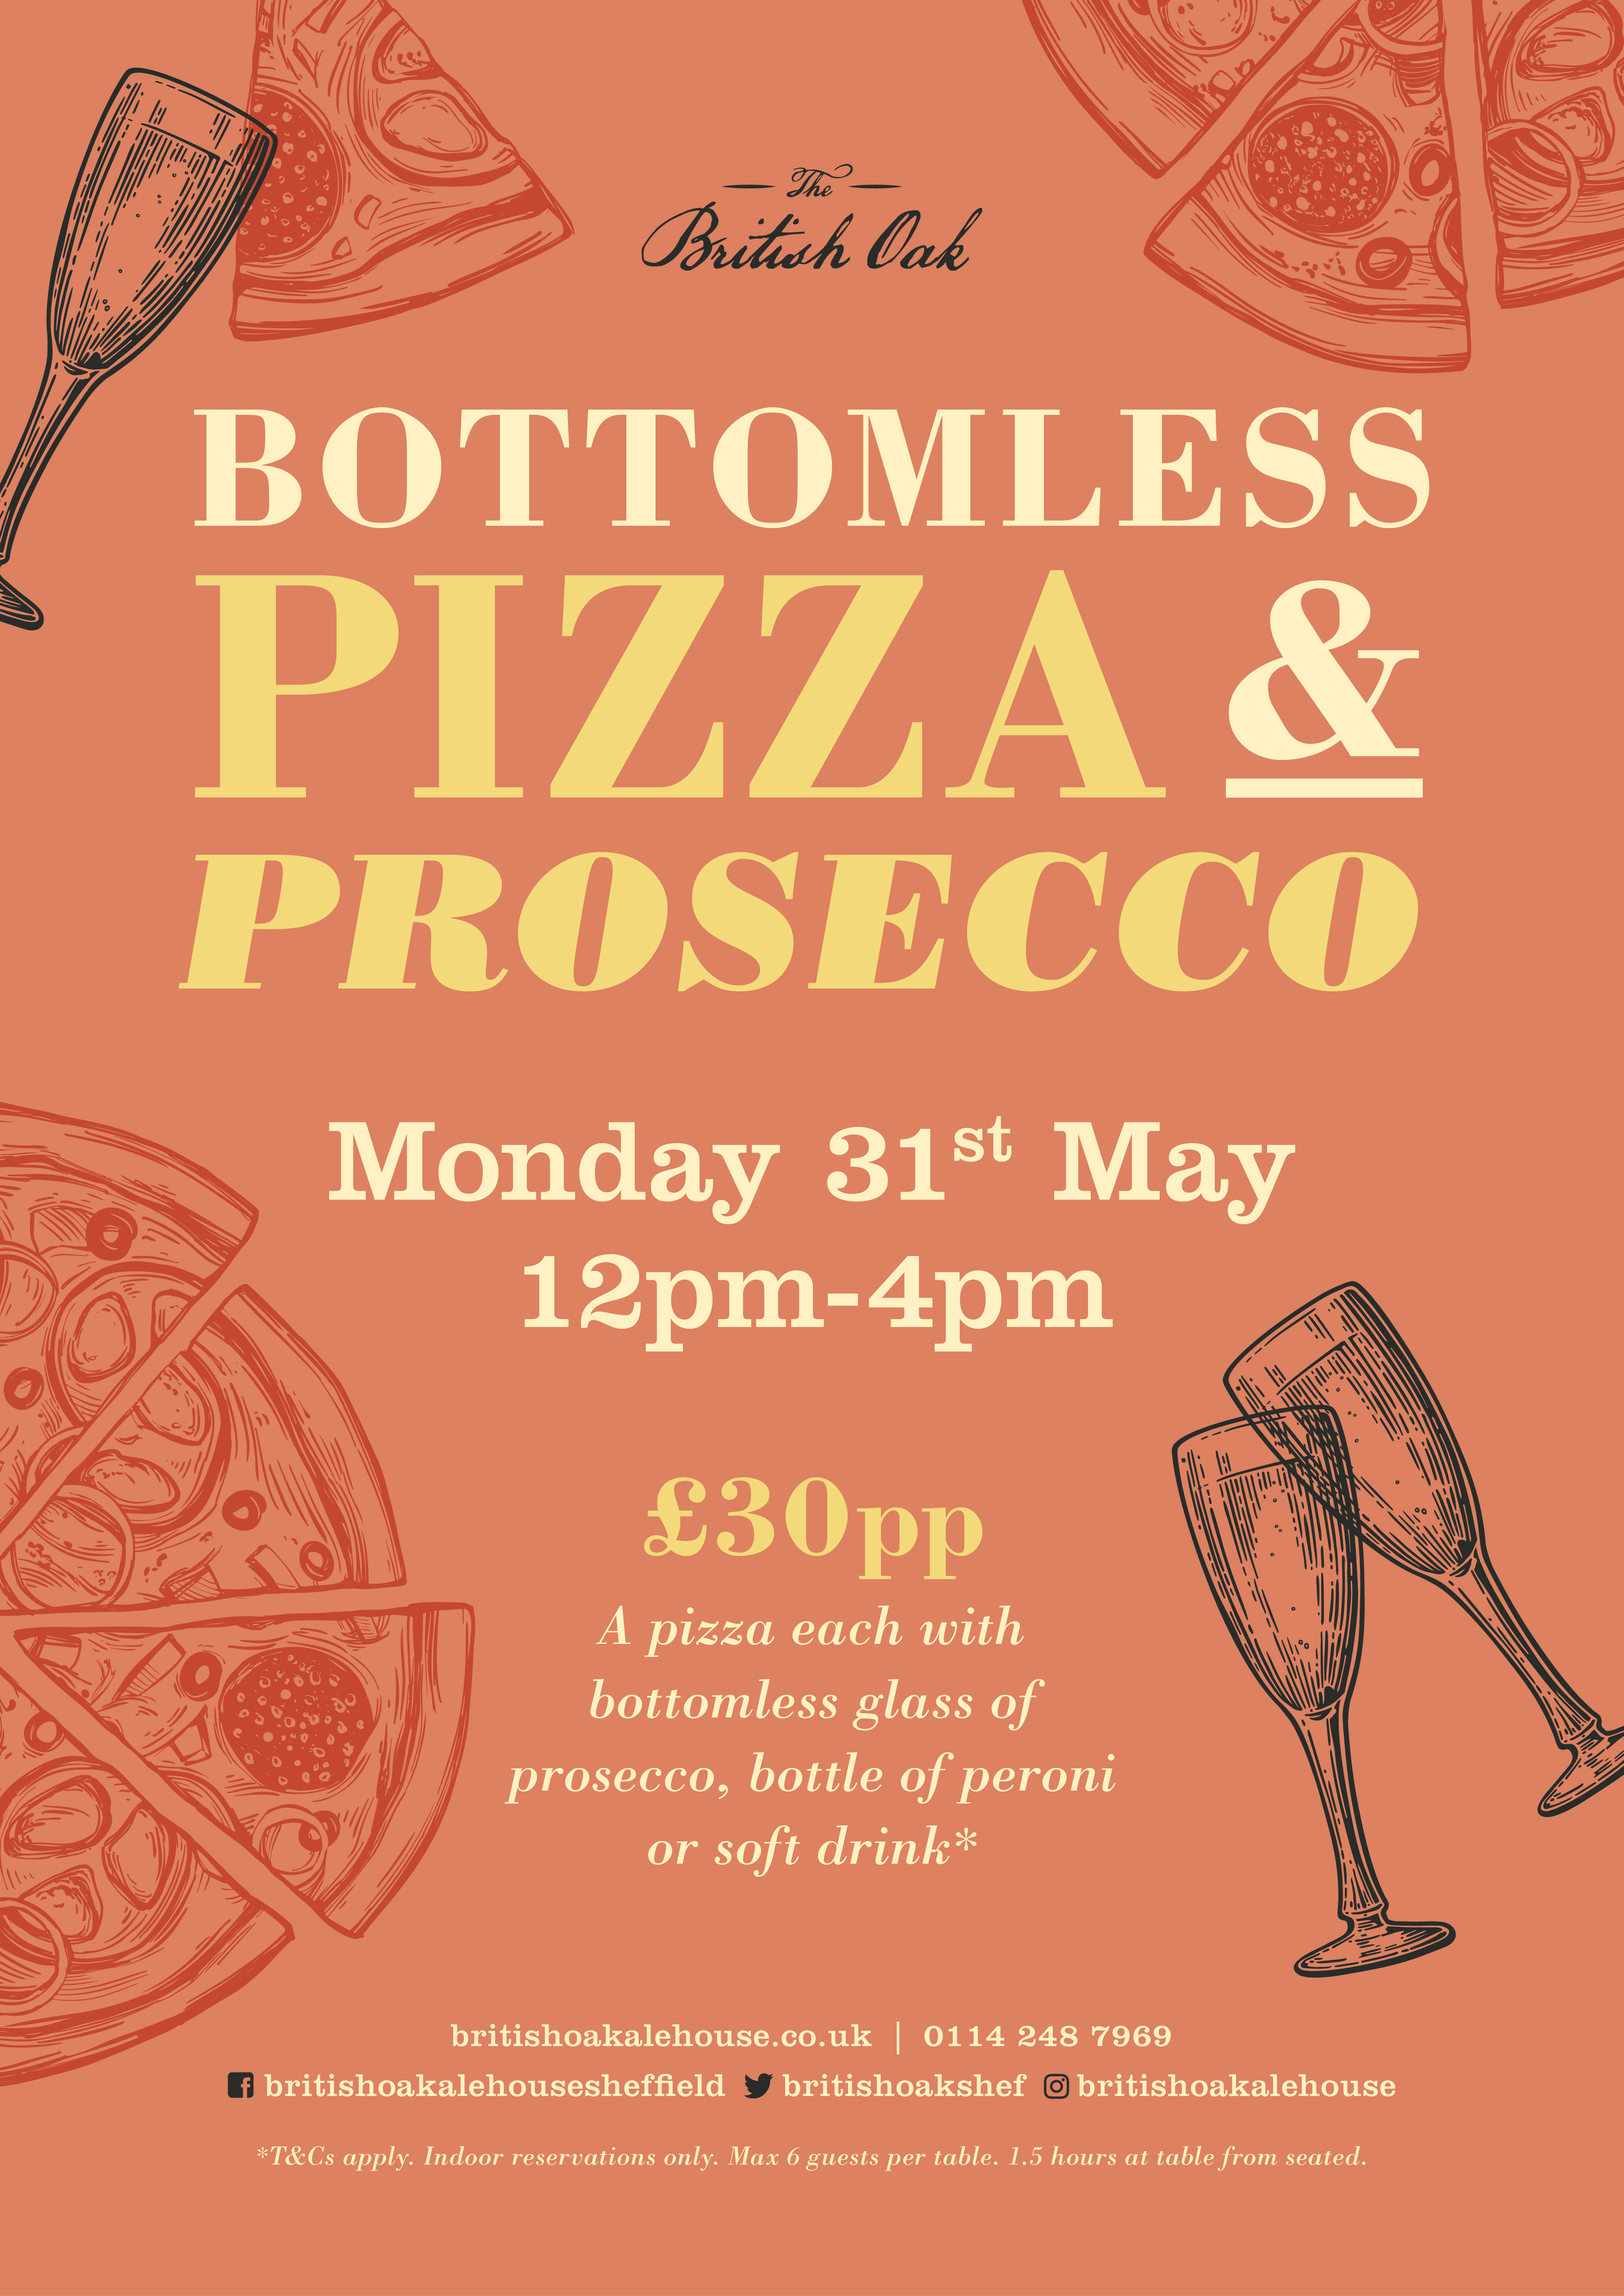 Bottomless Pizza and Prosecco